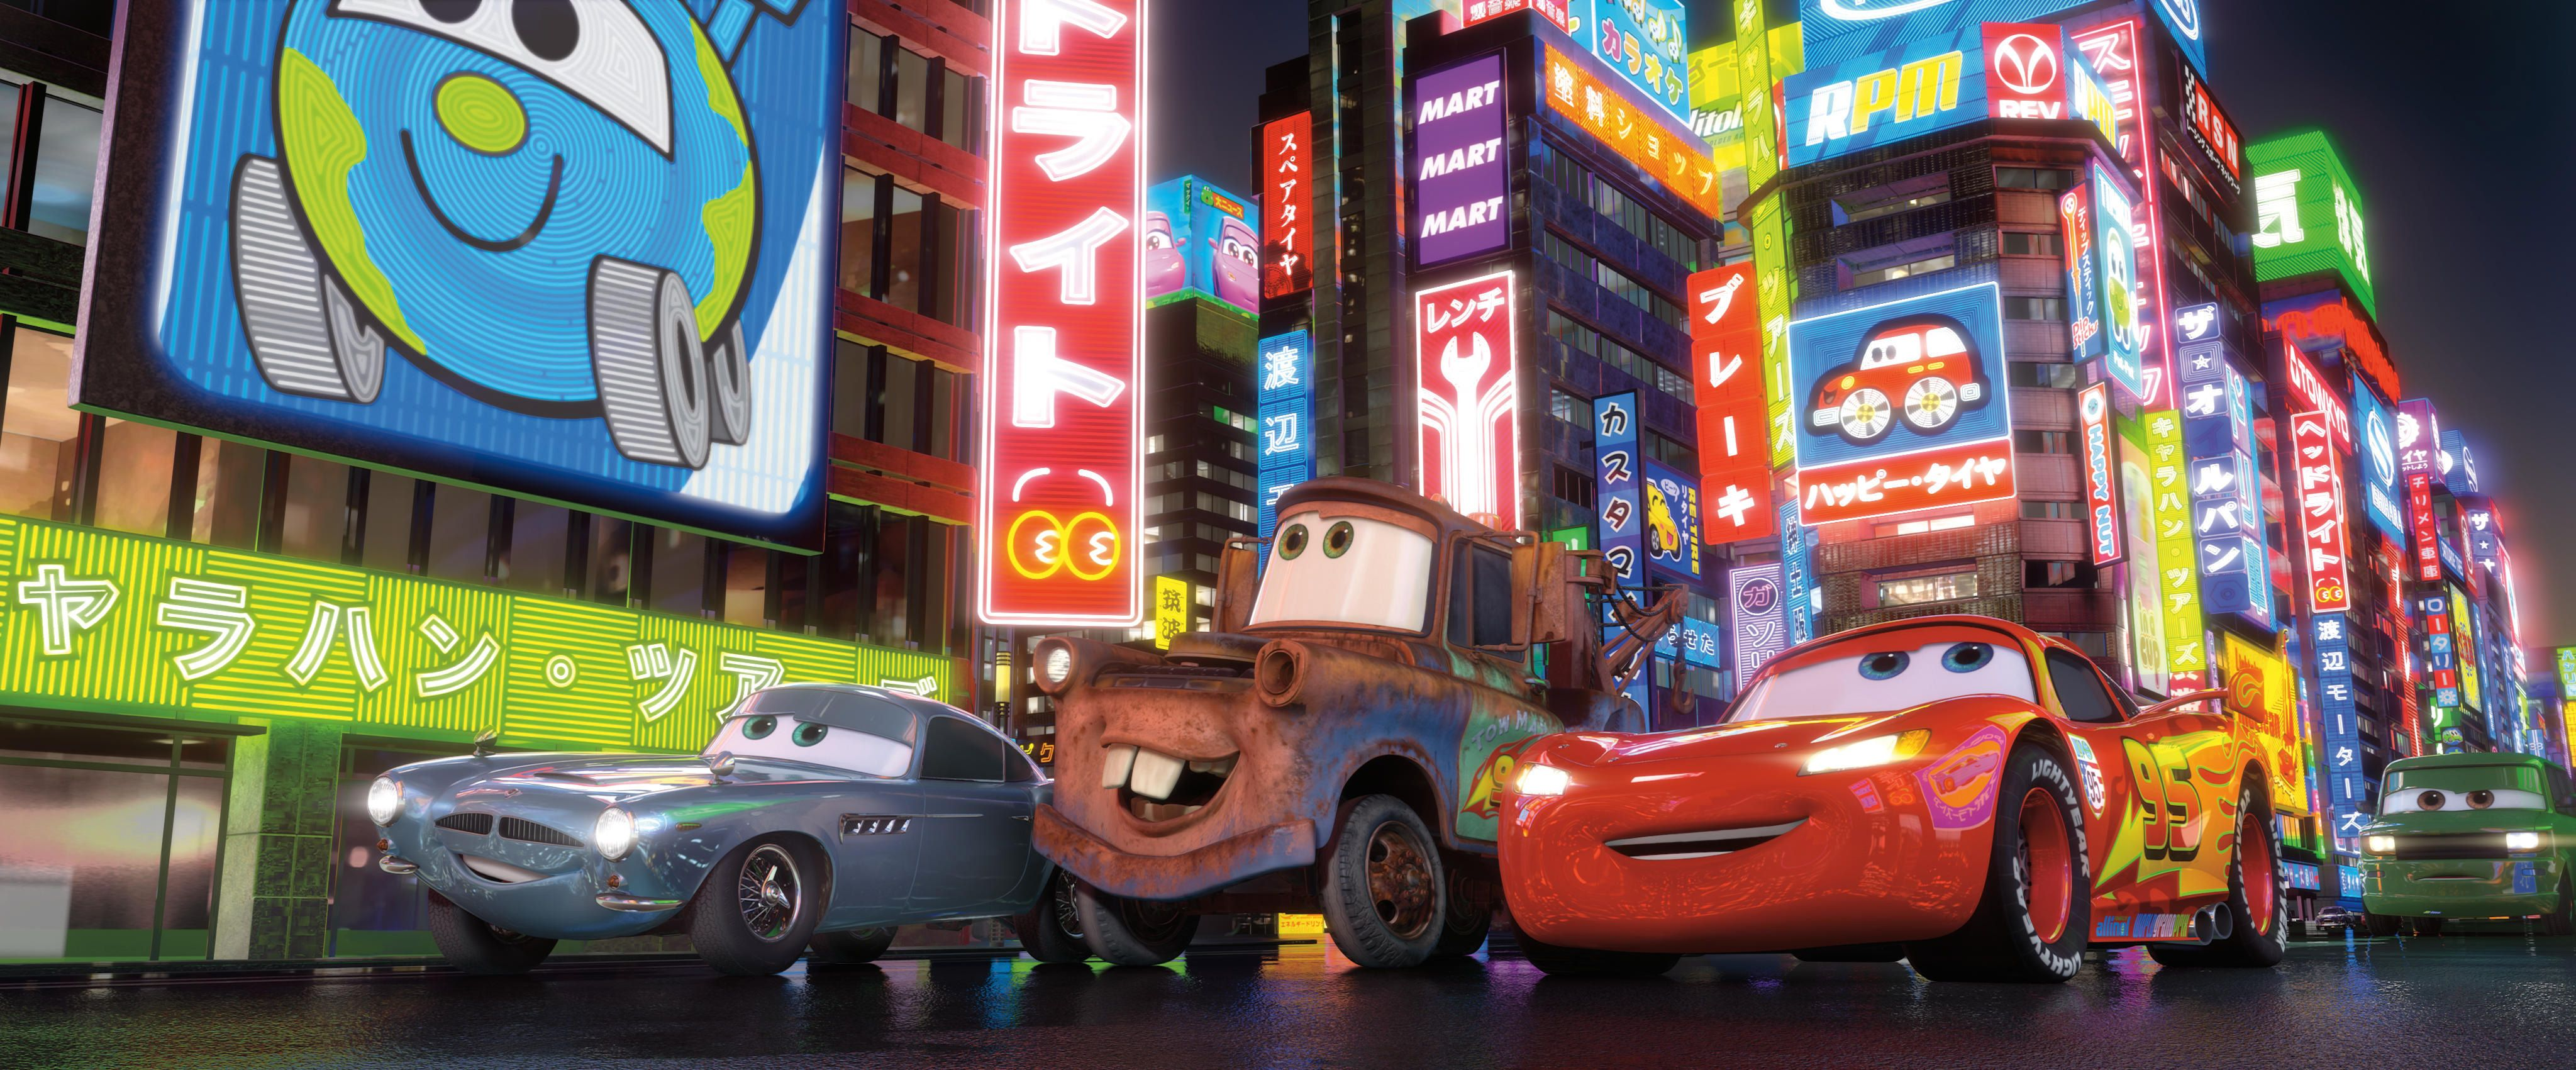 Cars 2 Images Collider